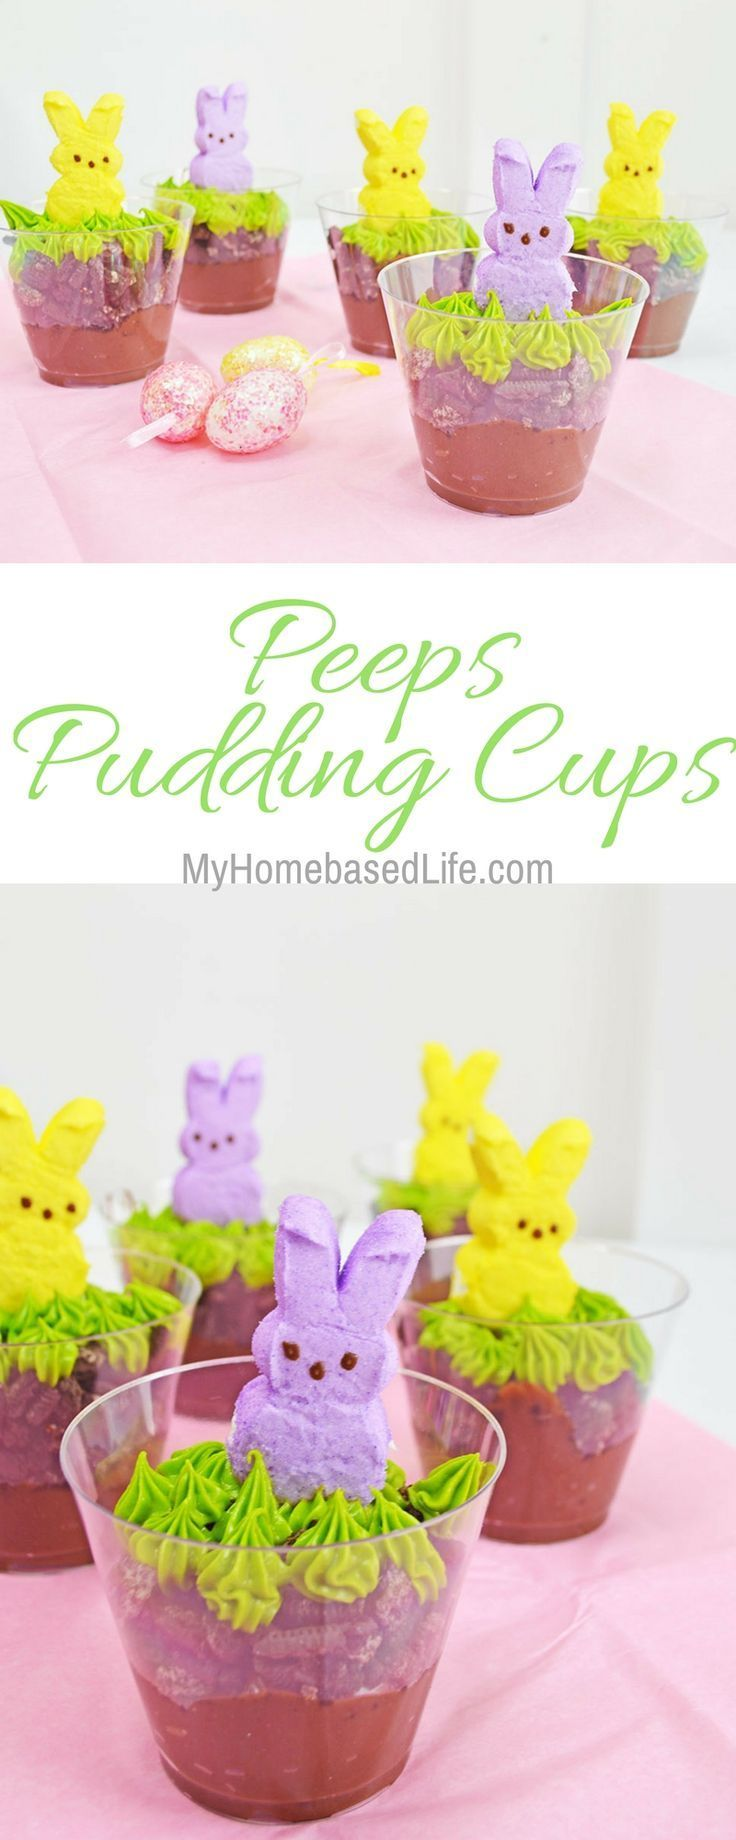 A fun chocolate dessert for kids this Easter featuring Peeps. This recipe makes you a total of 5 peeps pudding cups for the kids to enjoy. | Easter Dessert Recipe | Dessert Recipe | Peeps Recipe | Pudding Cups | Chocolate | Easy Dessert Idea | Simple Dessert for Kids via […]